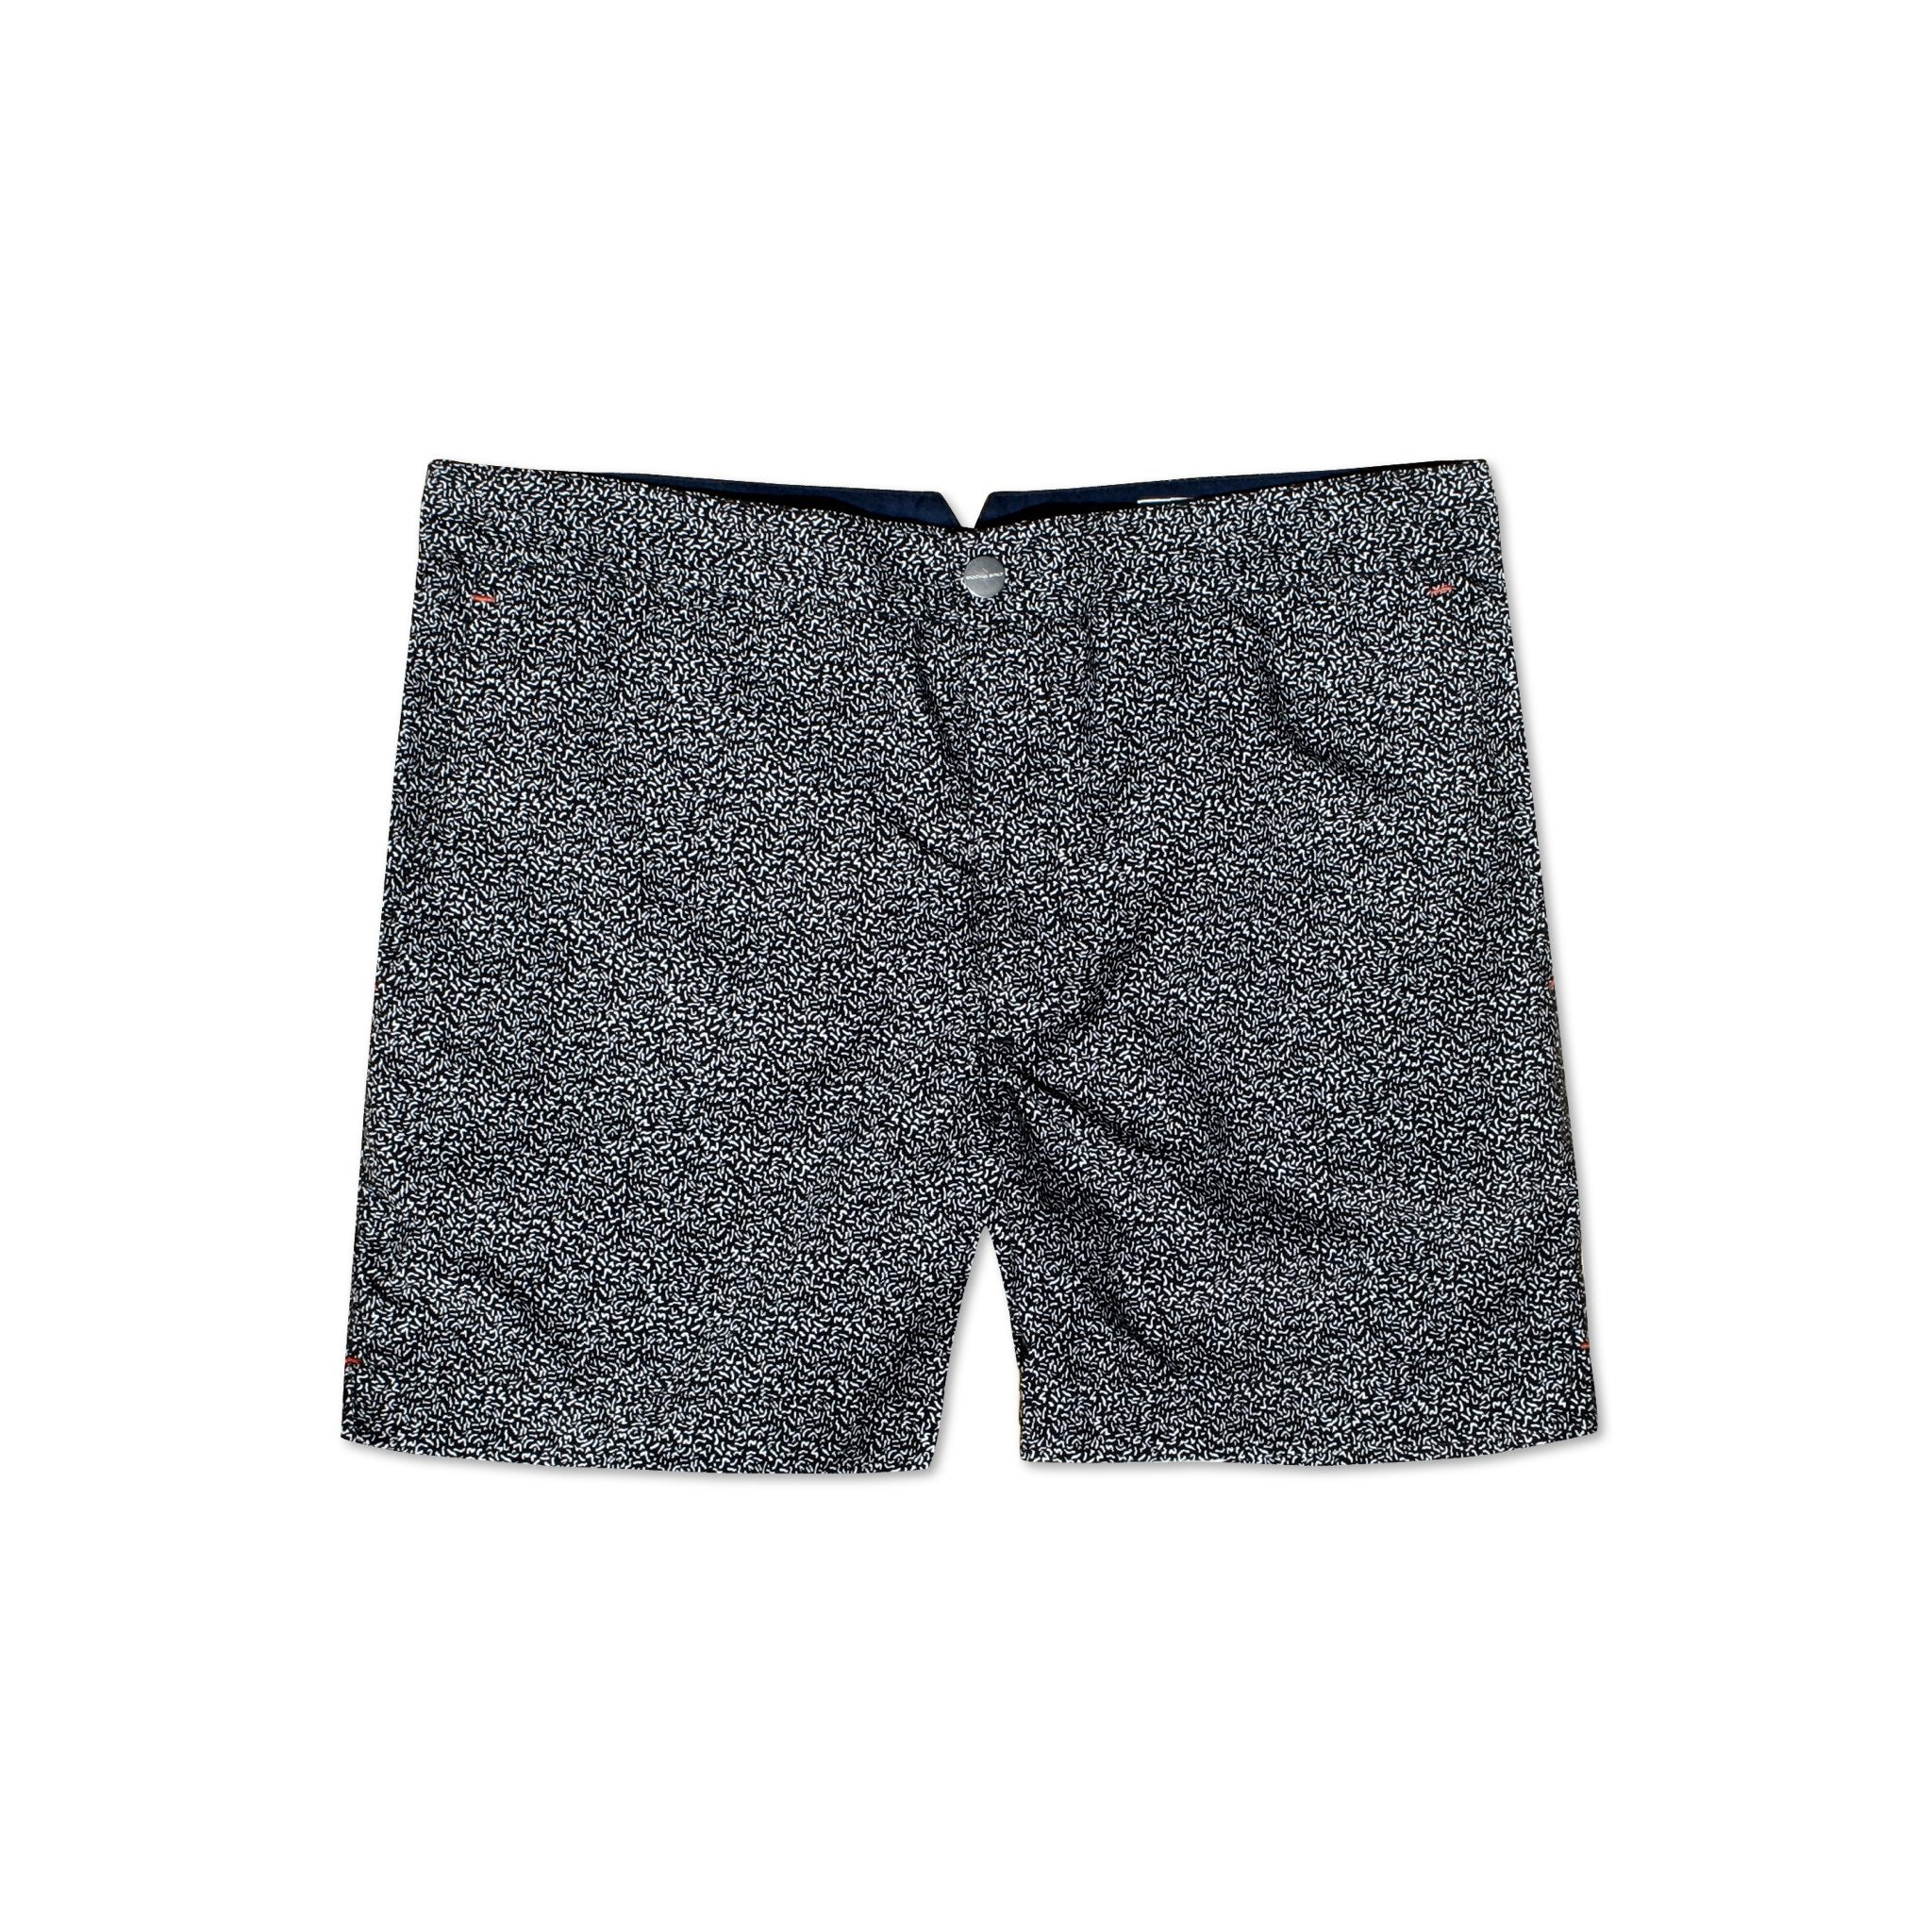 Huck 5 Micro Black tailored swim shorts